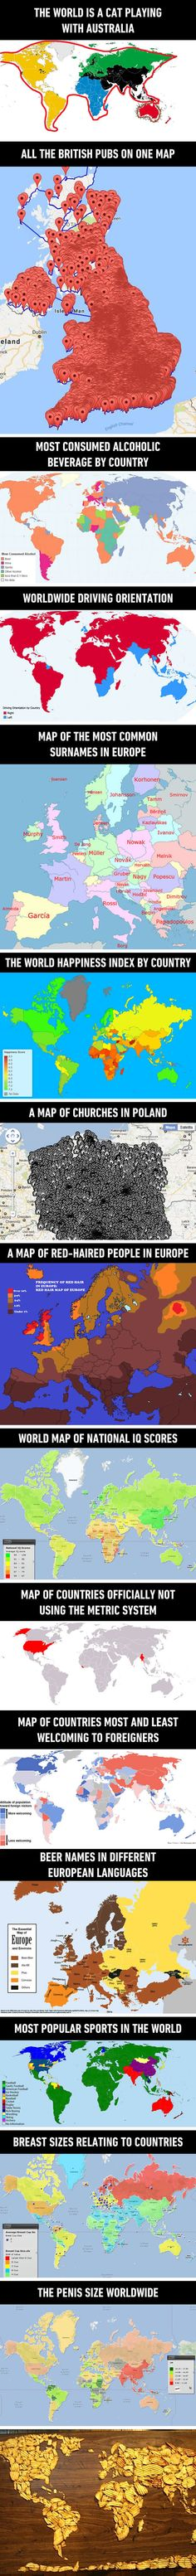 Geek Discover 15 Amazing maps of the world that school didnt show us